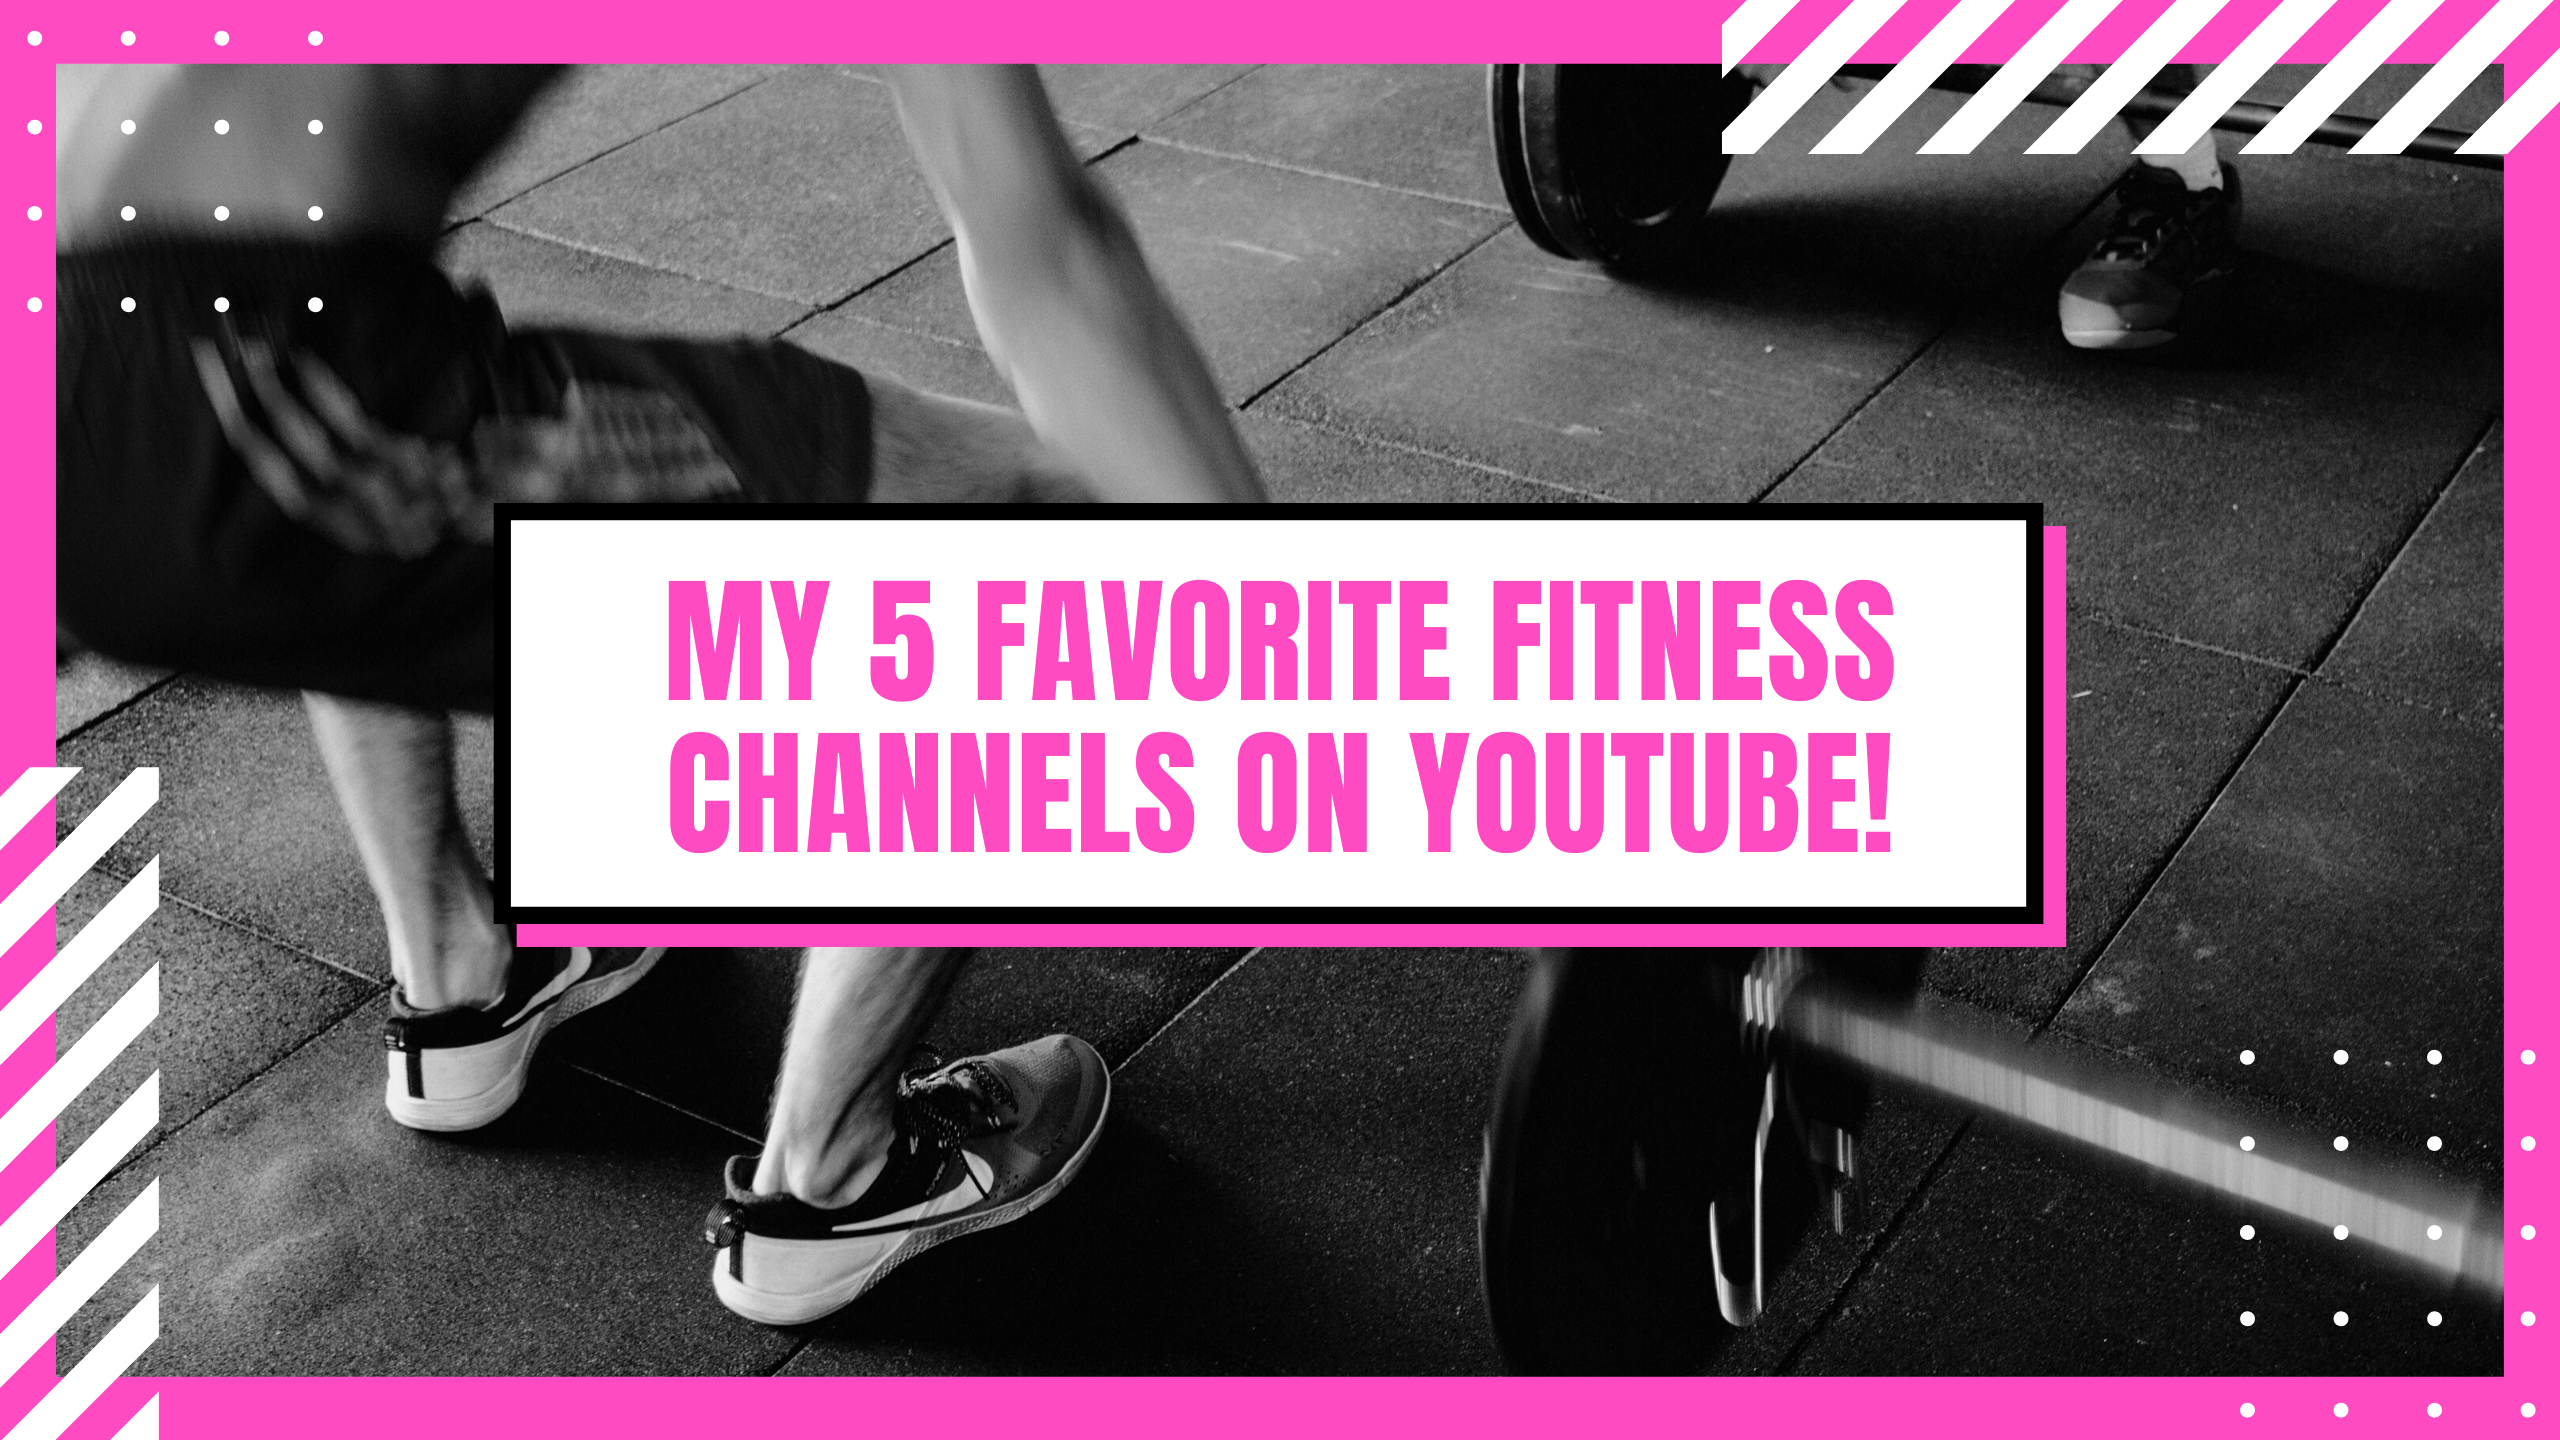 My 5 Favorite Fitness Channels on Youtube!